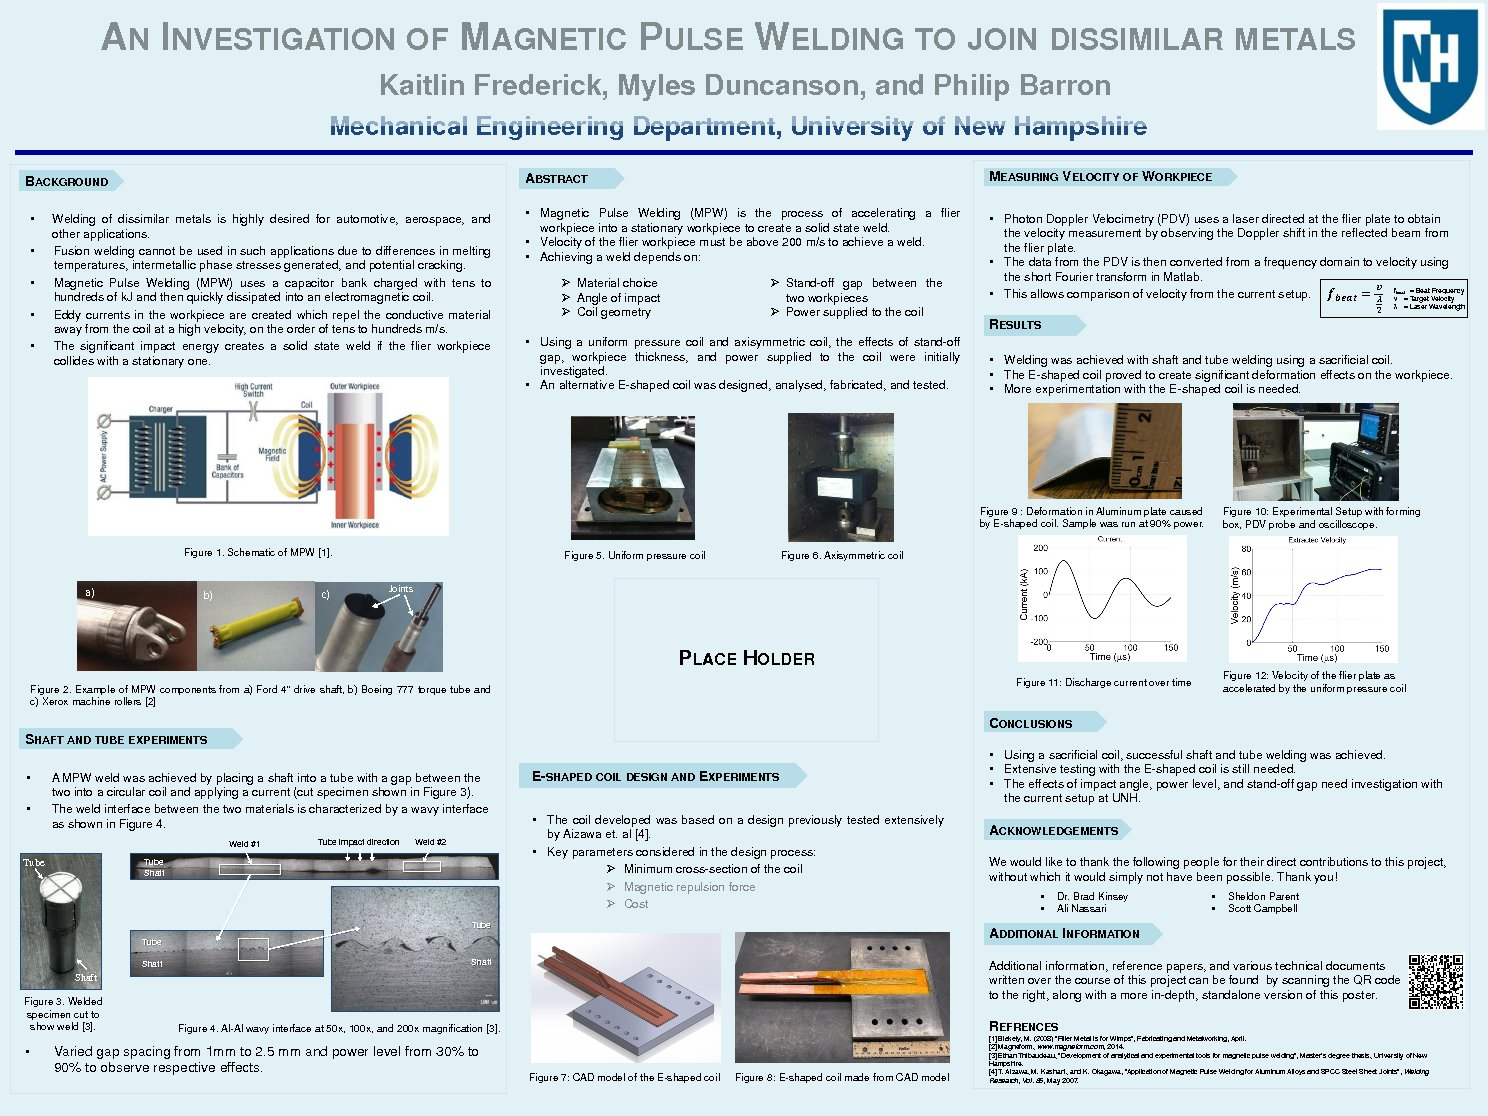 An Investigation Of Magnetic Pulse Welding To Join Dissimilar Metals by mss44